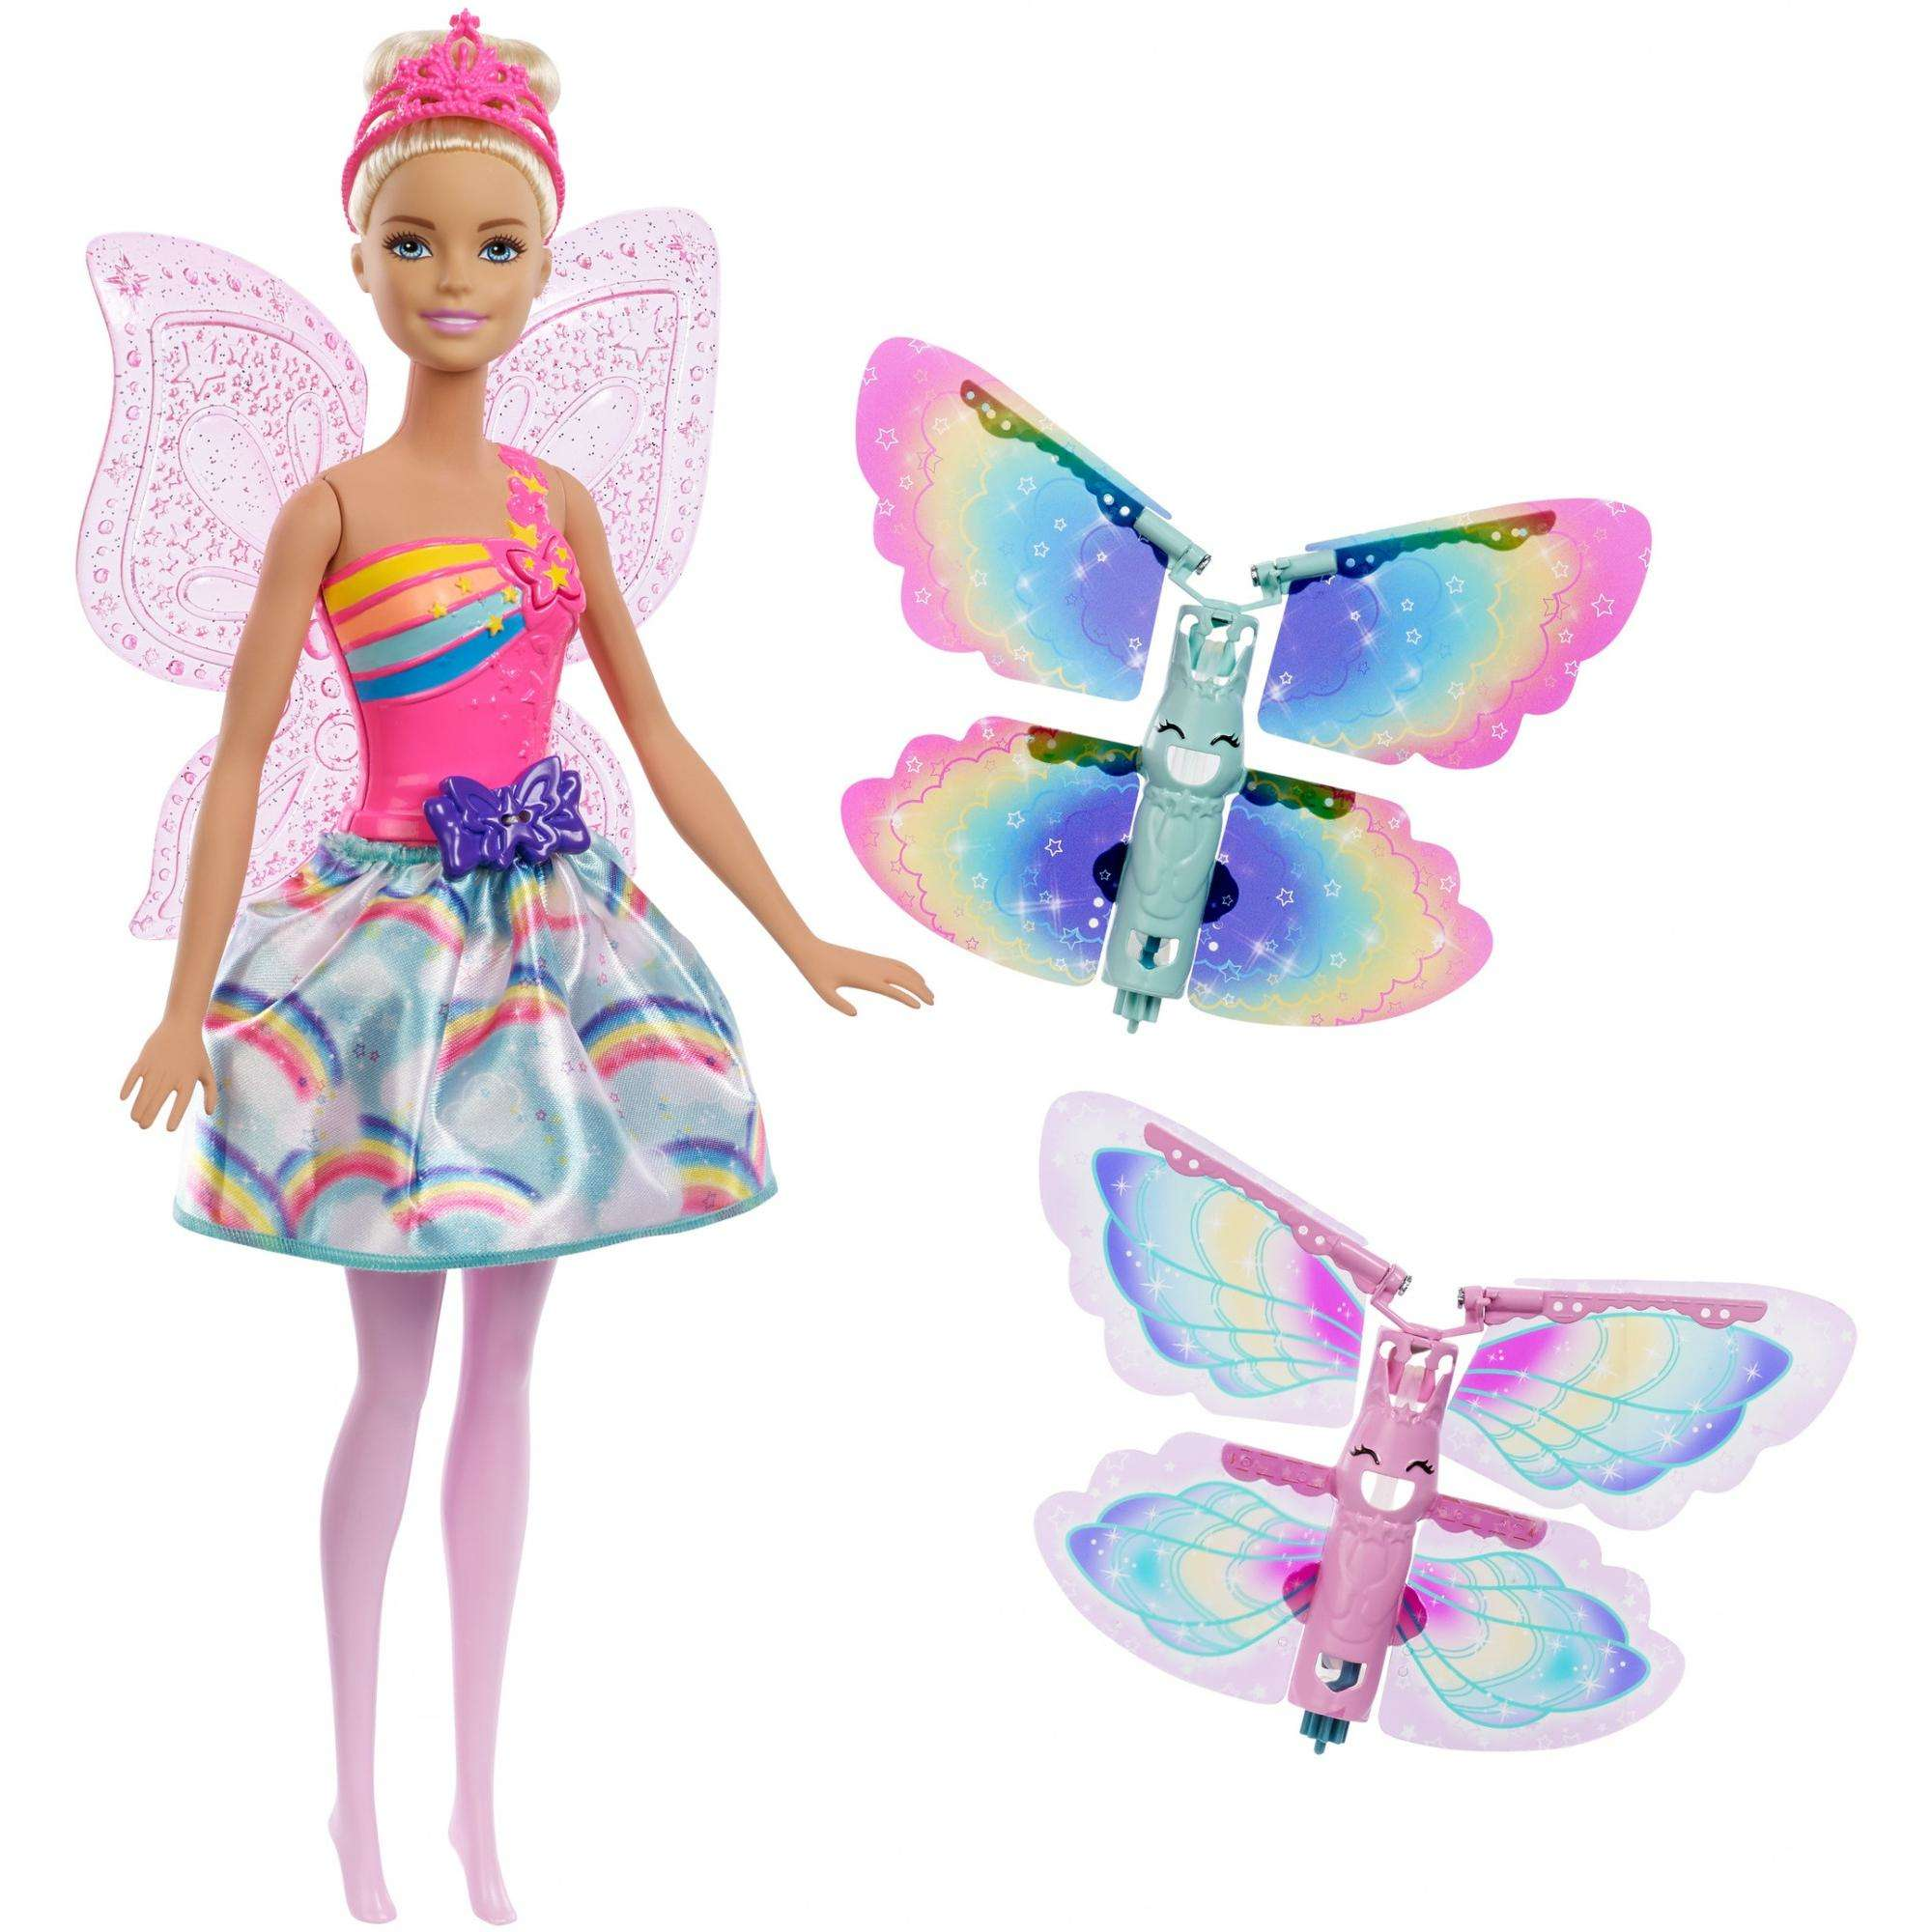 Barbie Dreamtopia Flying Wings Fairy Doll with Blonde Hair by Mattel